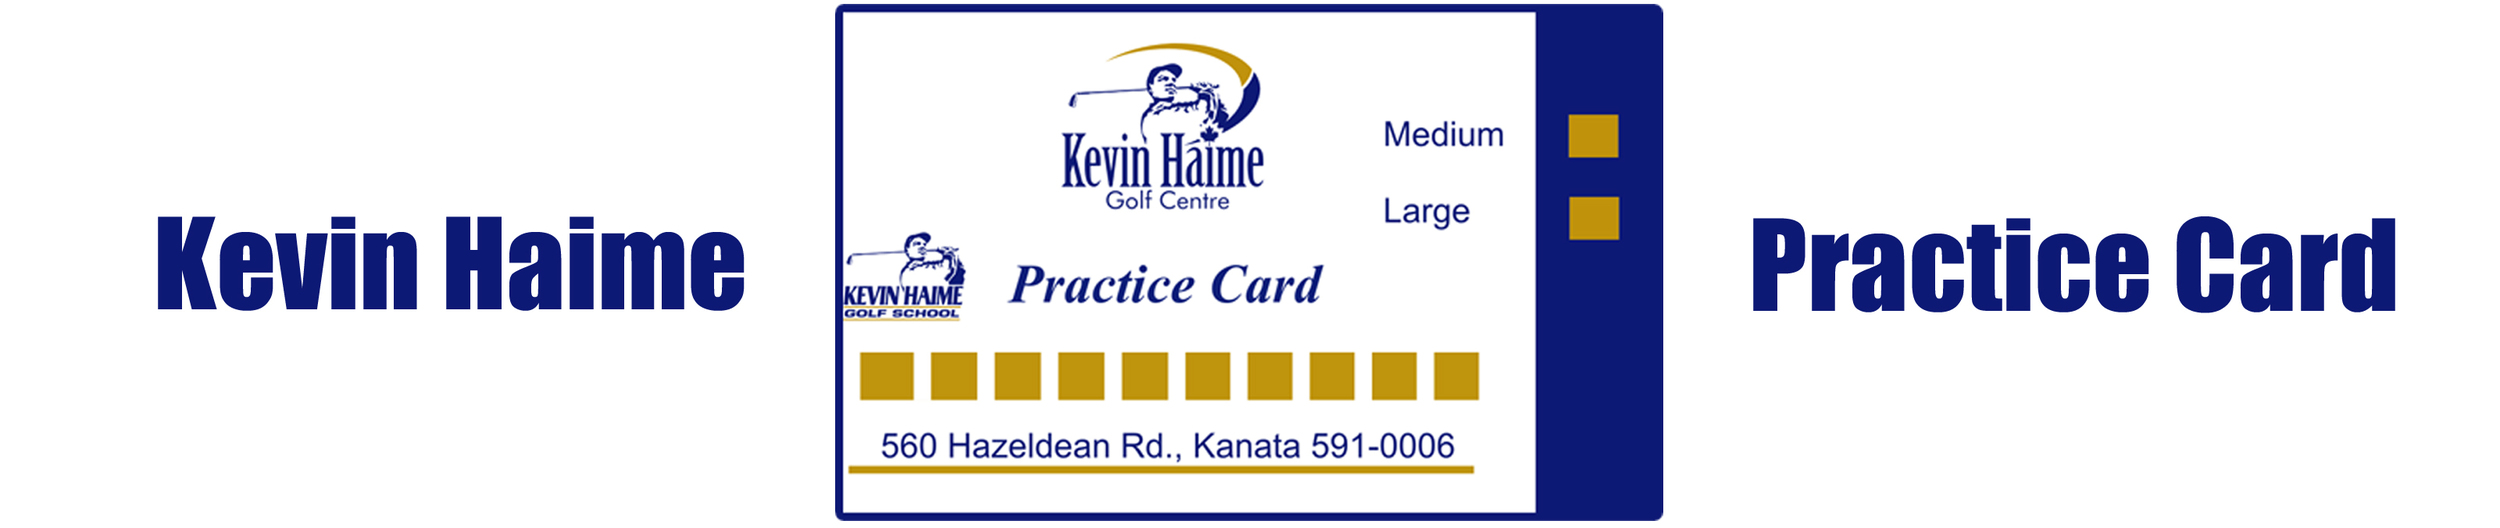 Practice Card.png